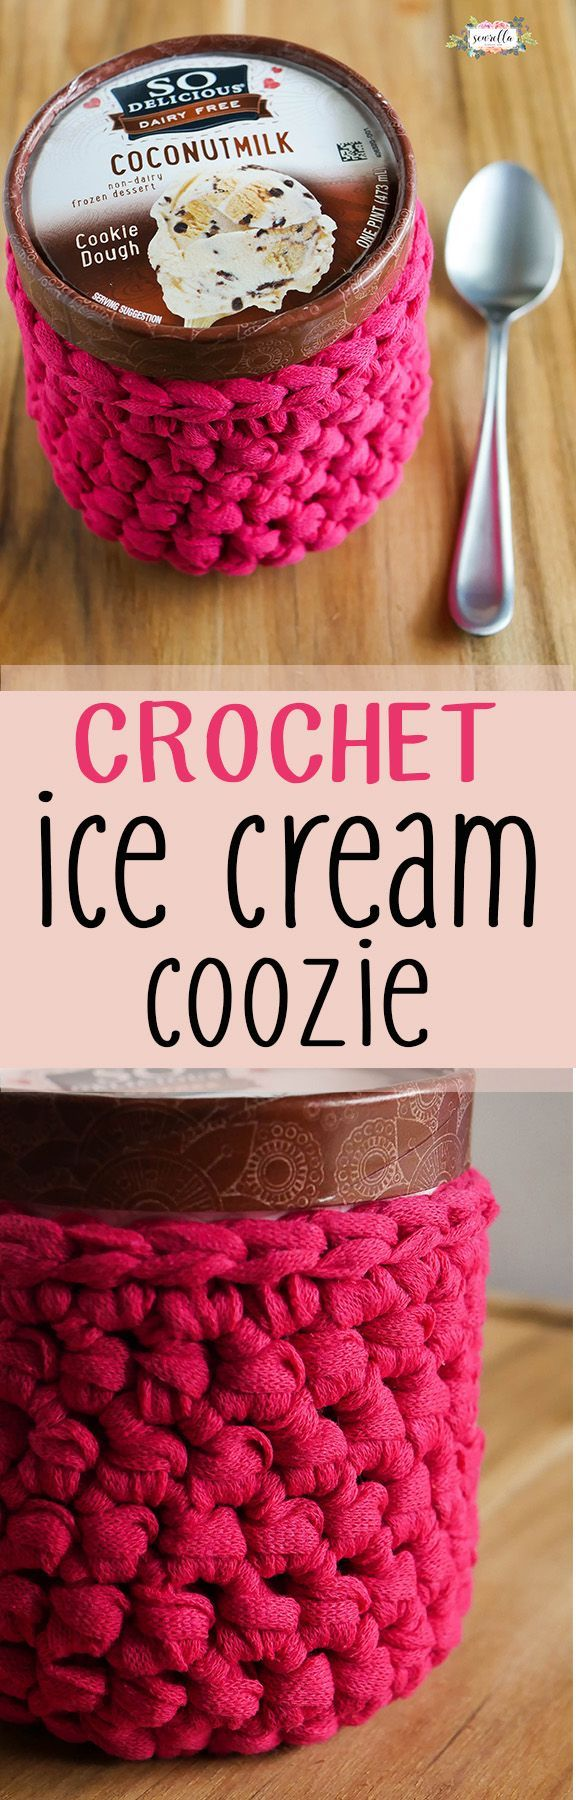 Crochet Ice Cream Coozie - no more frozen fingers after indulging in your favorite pint! Get the free pattern on my blog